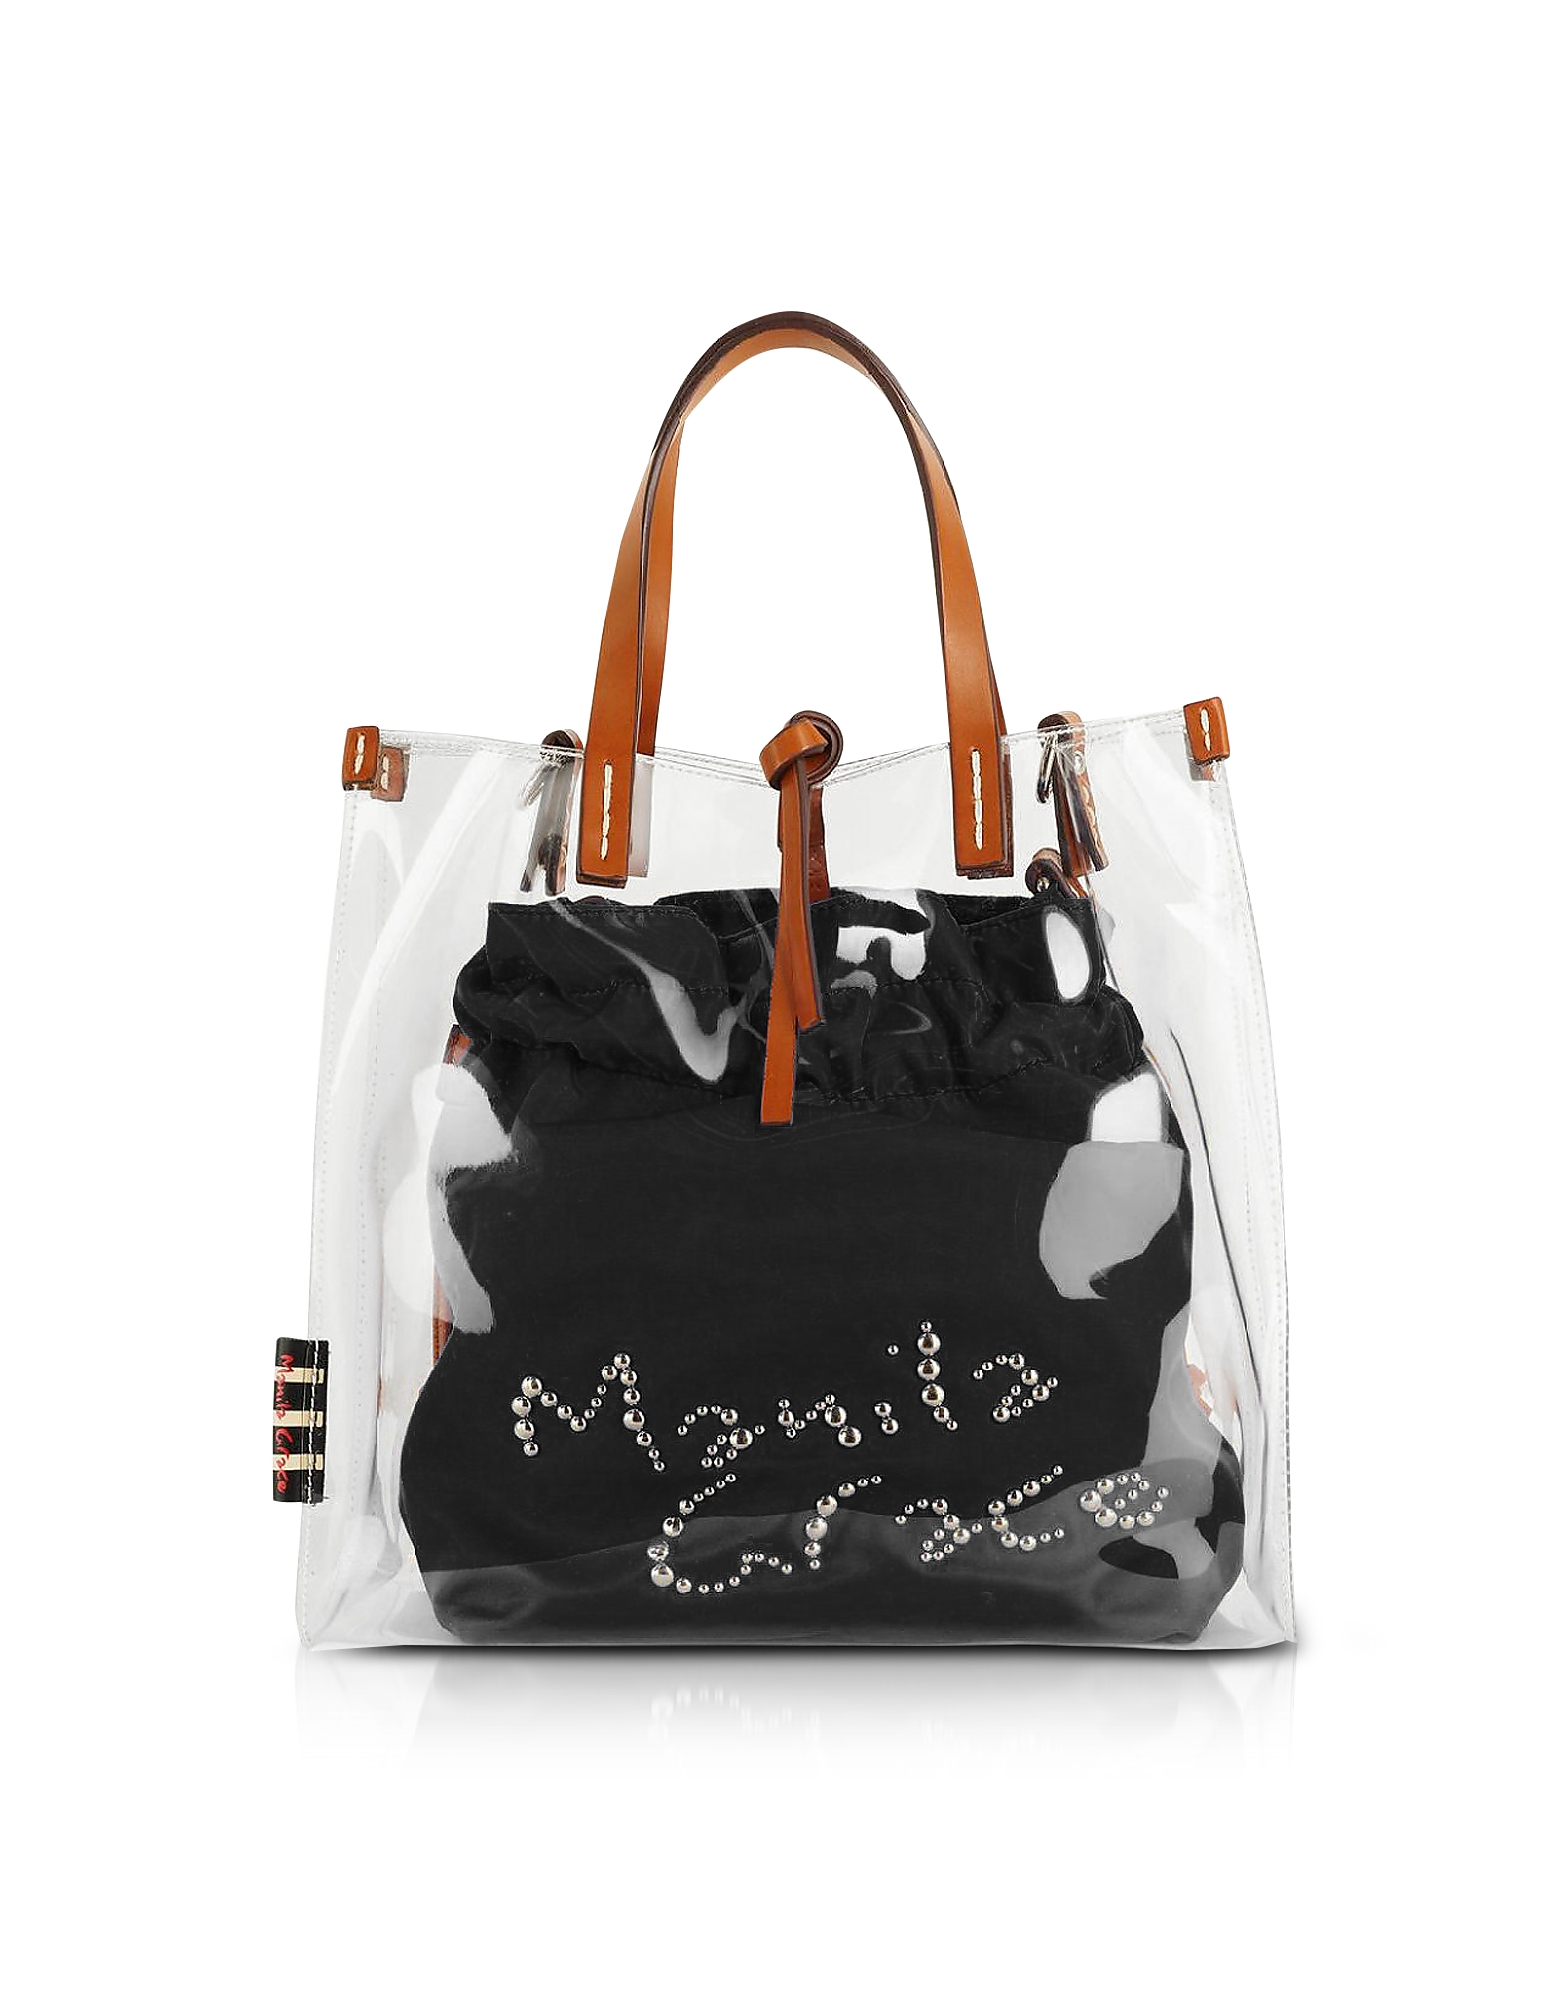 Manila Grace Designer Handbags, Transparent Tote Bag